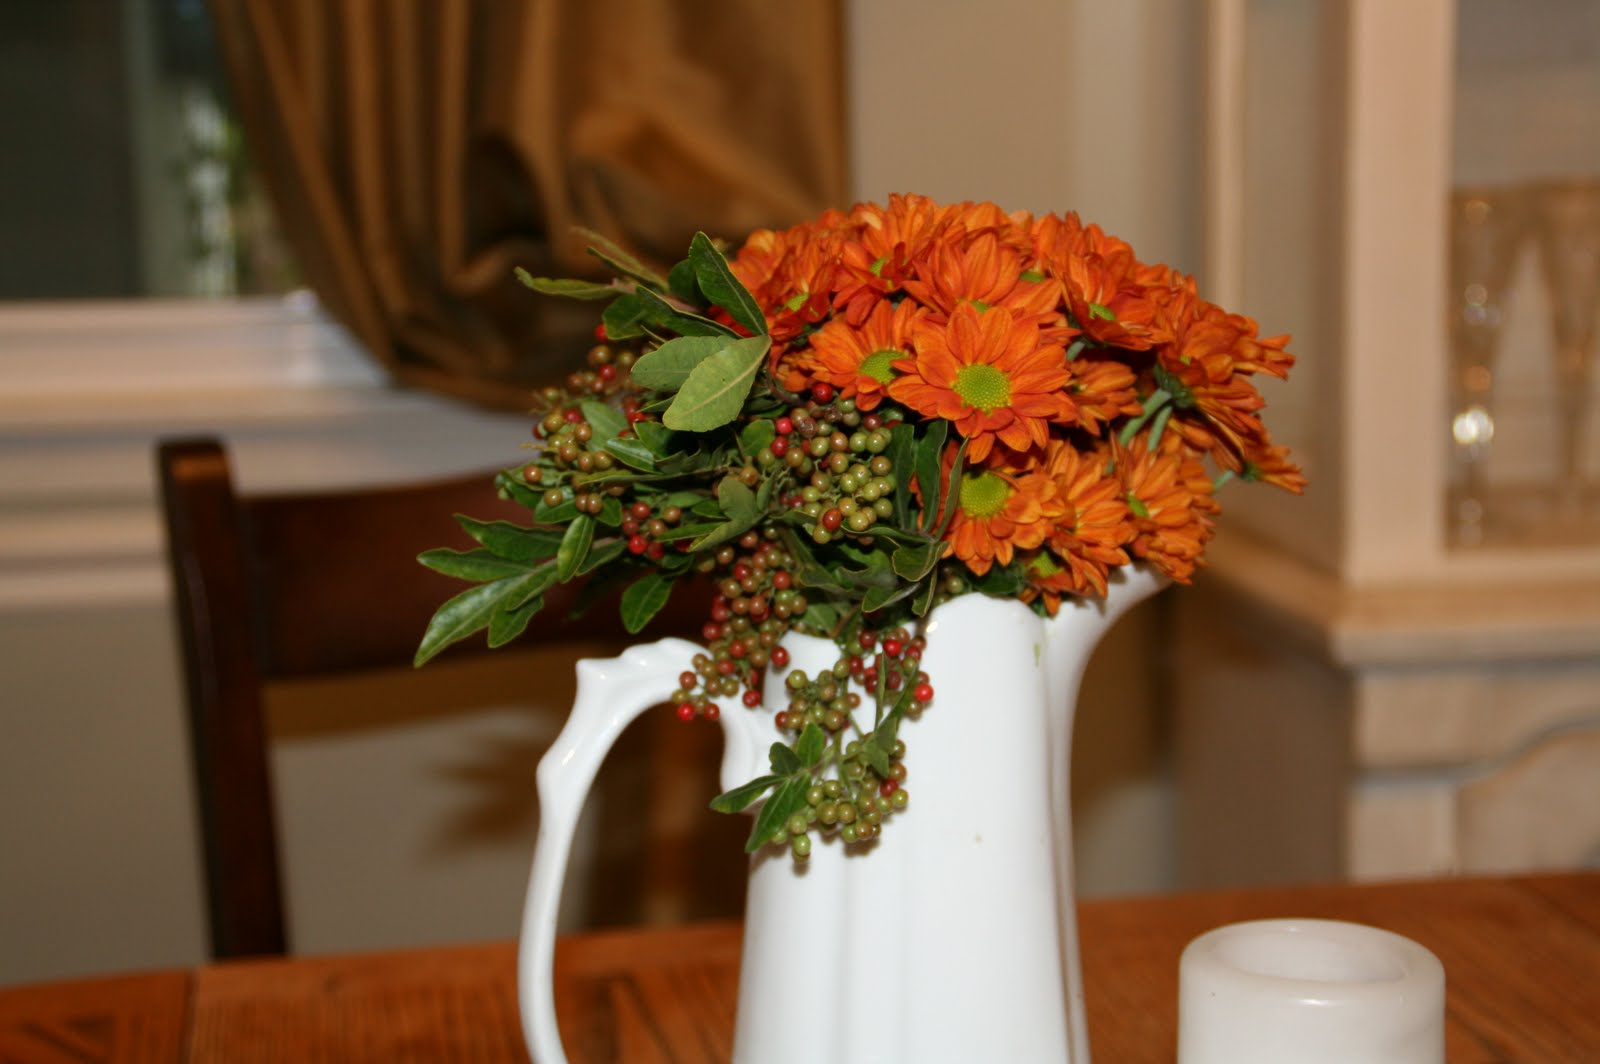 Heavenly Chic Interiors Thanksgiving Flowers $3 for $12 at Safeway